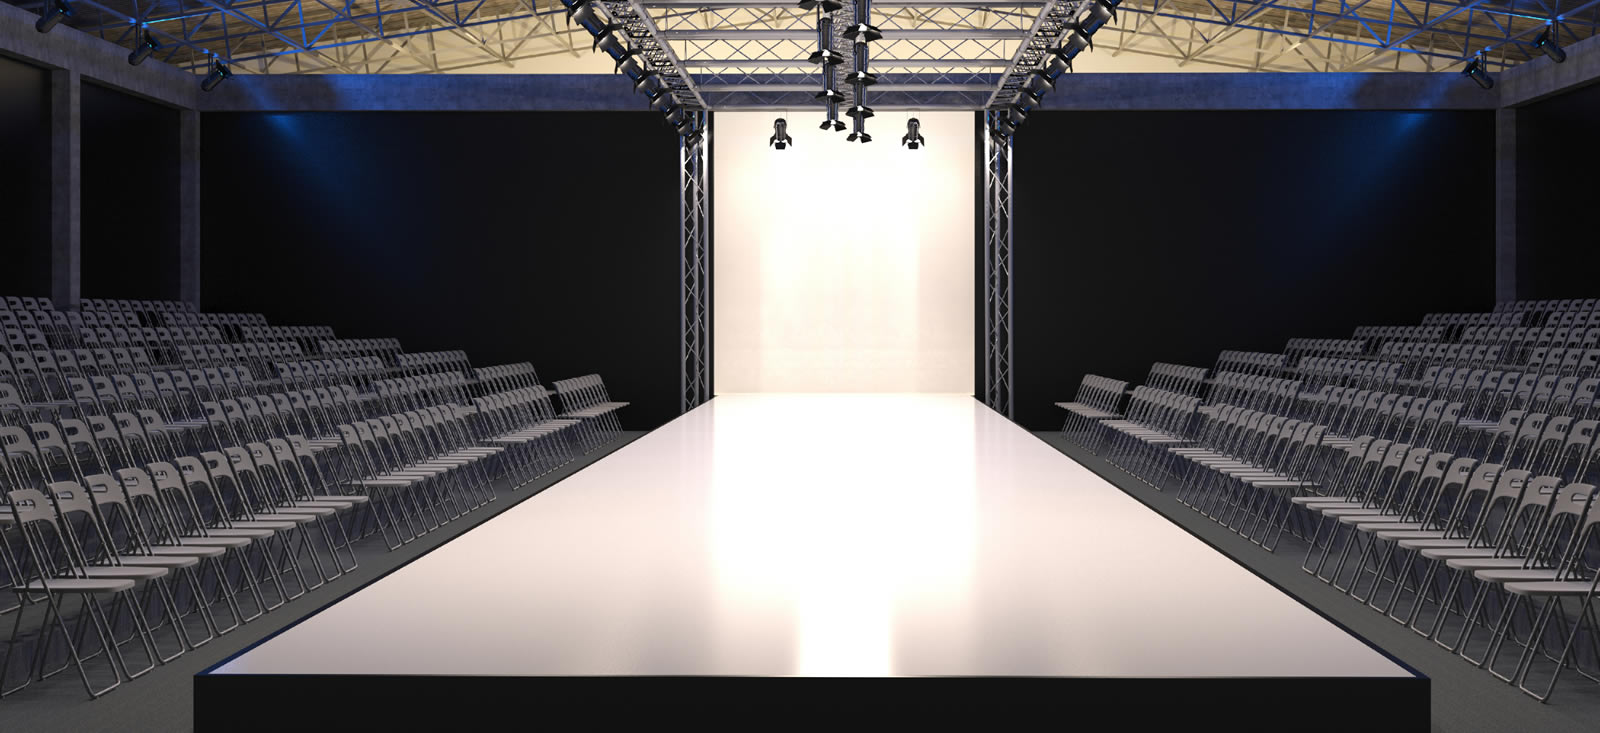 Stage catwalk show